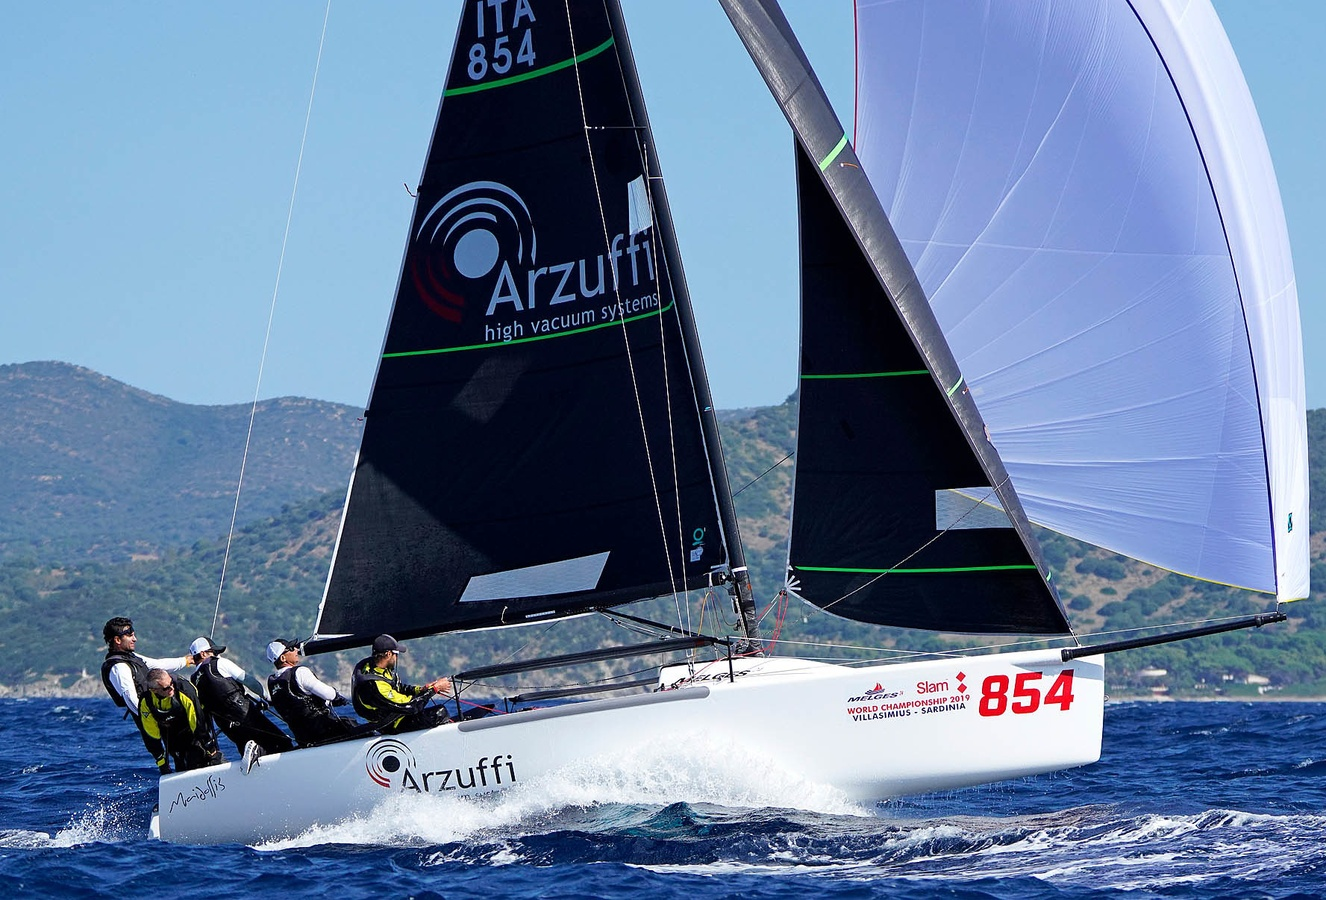 Maidollis and Take 4 are the new Melges 24 World Champions